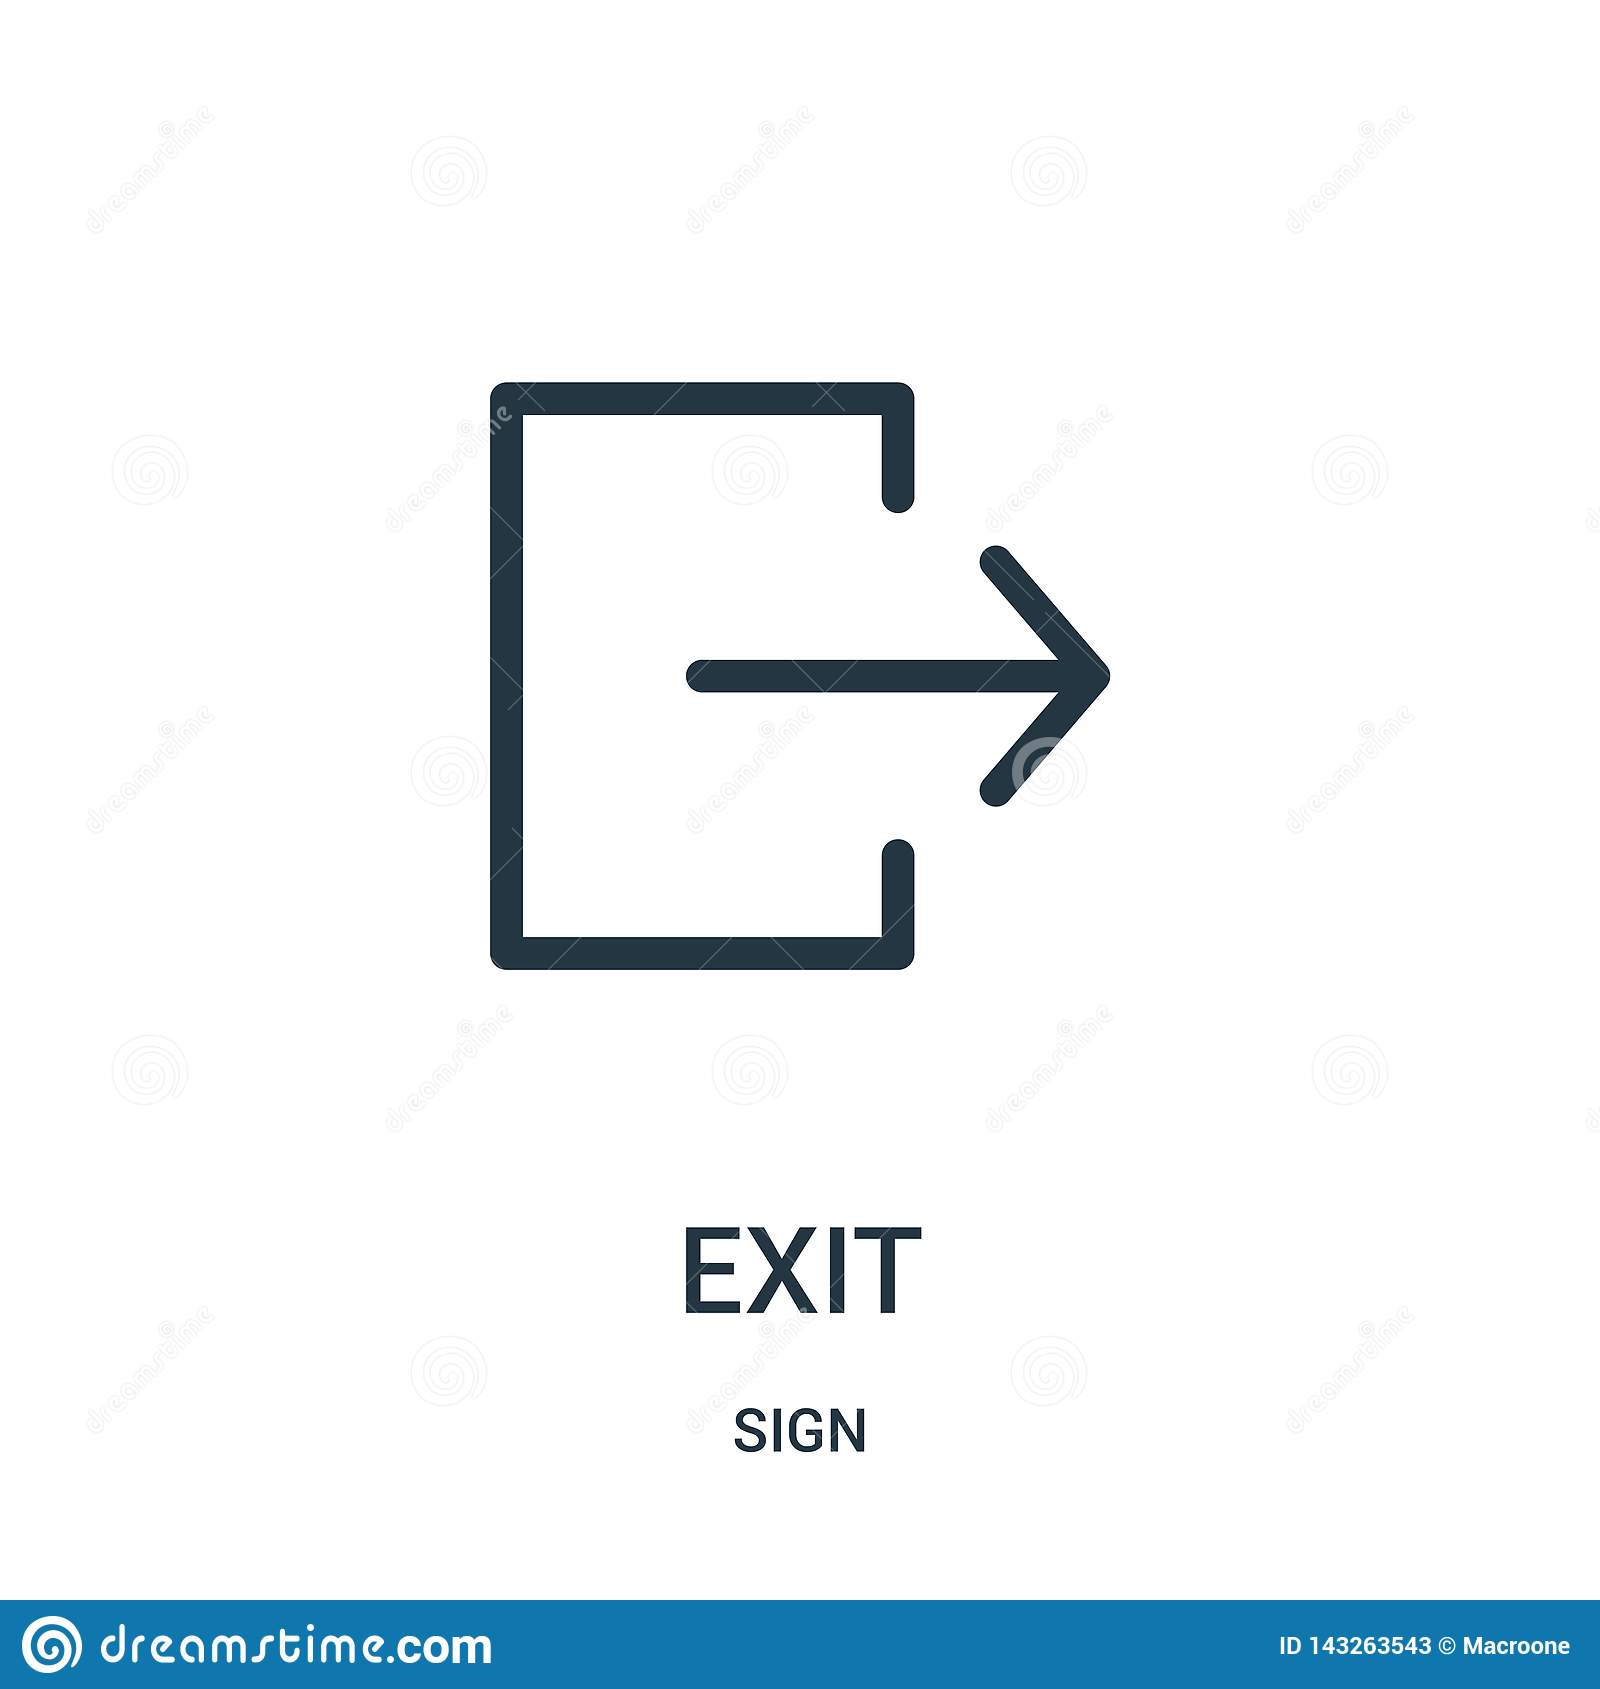 exit icon vector from sign collection. Thin line exit outline icon vector illustration